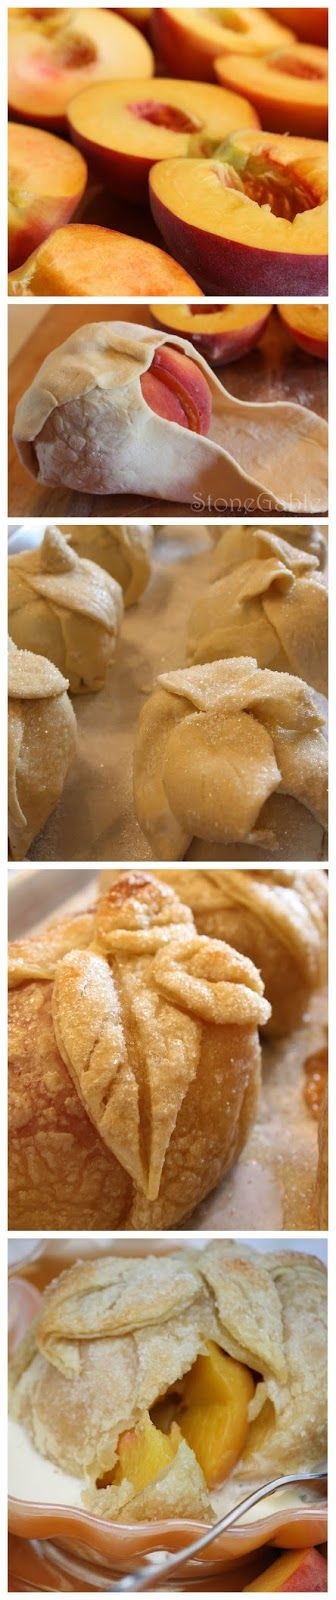 Peach Dumplings Recipe!